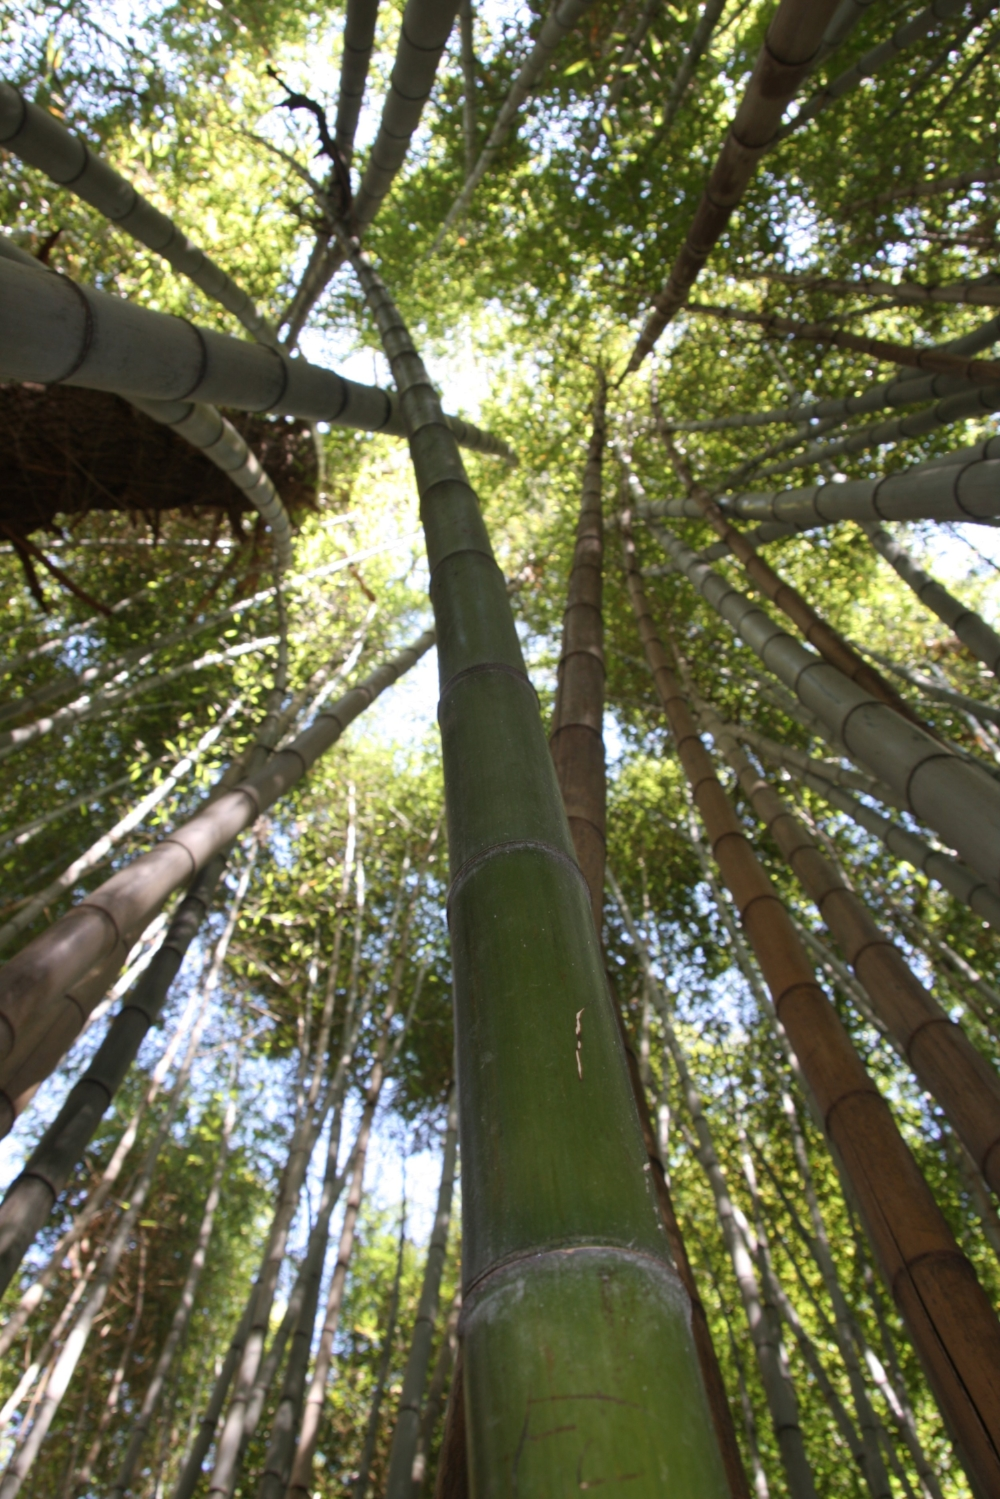 A bamboo forest; bamboo grows very fast and to great heights